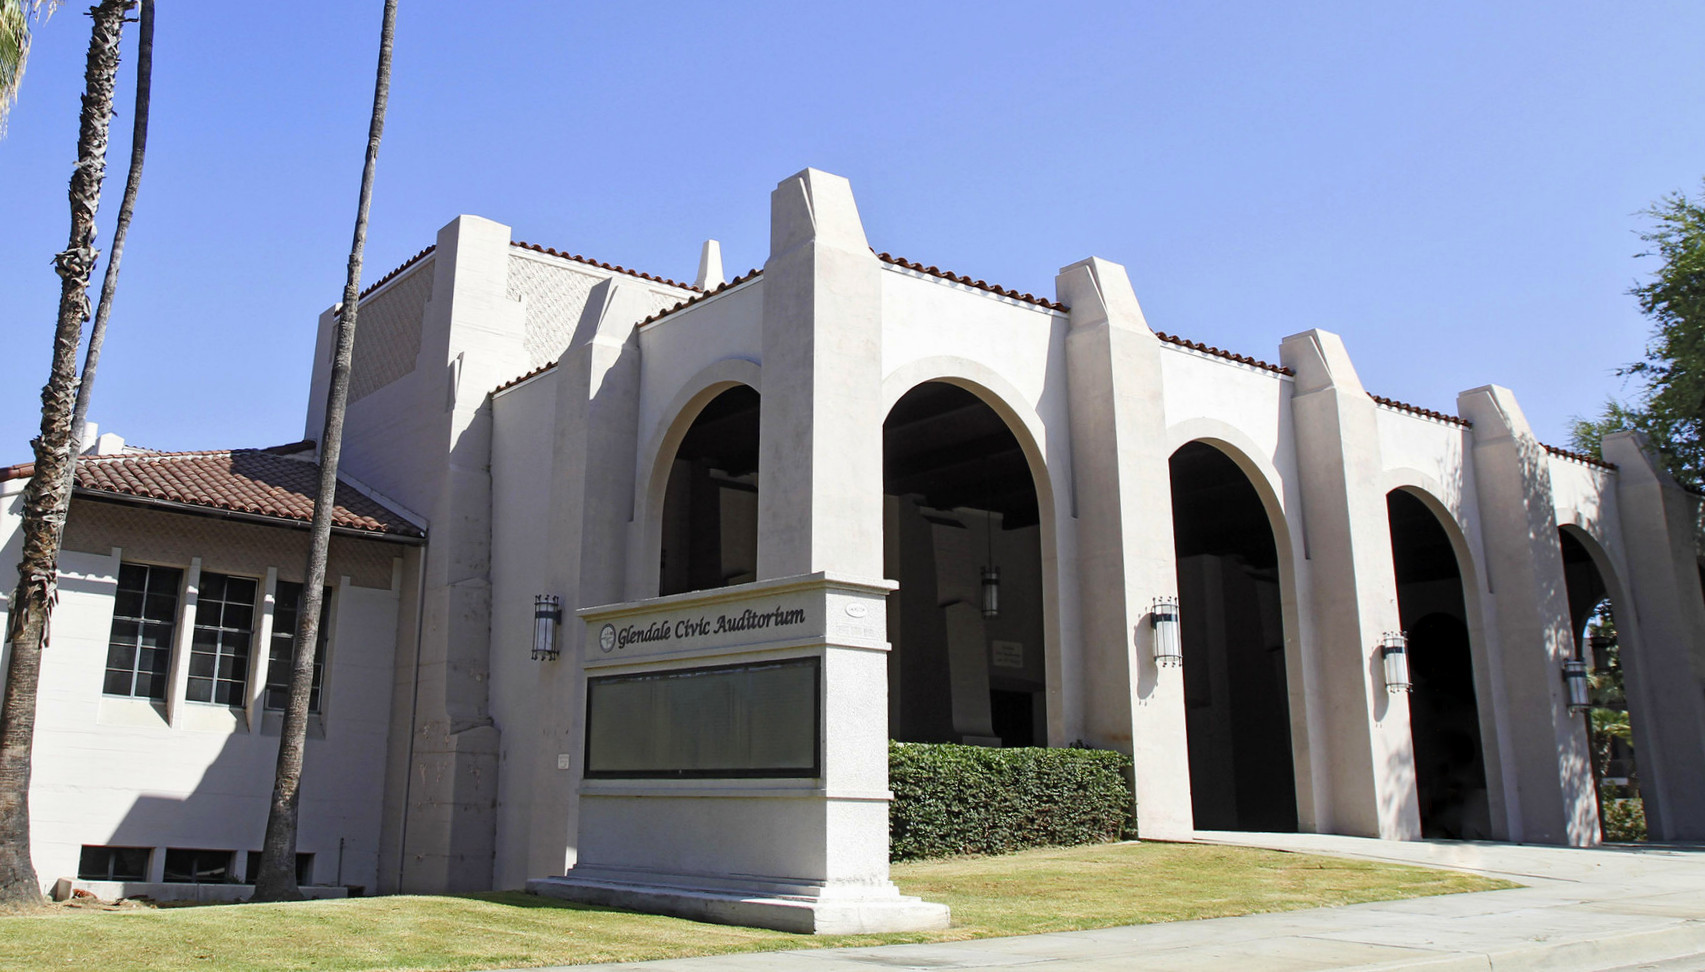 The charming and historic Glendale Civic Auditorium was built in 1938 in the Art Deco Spanish Colonial Revival style